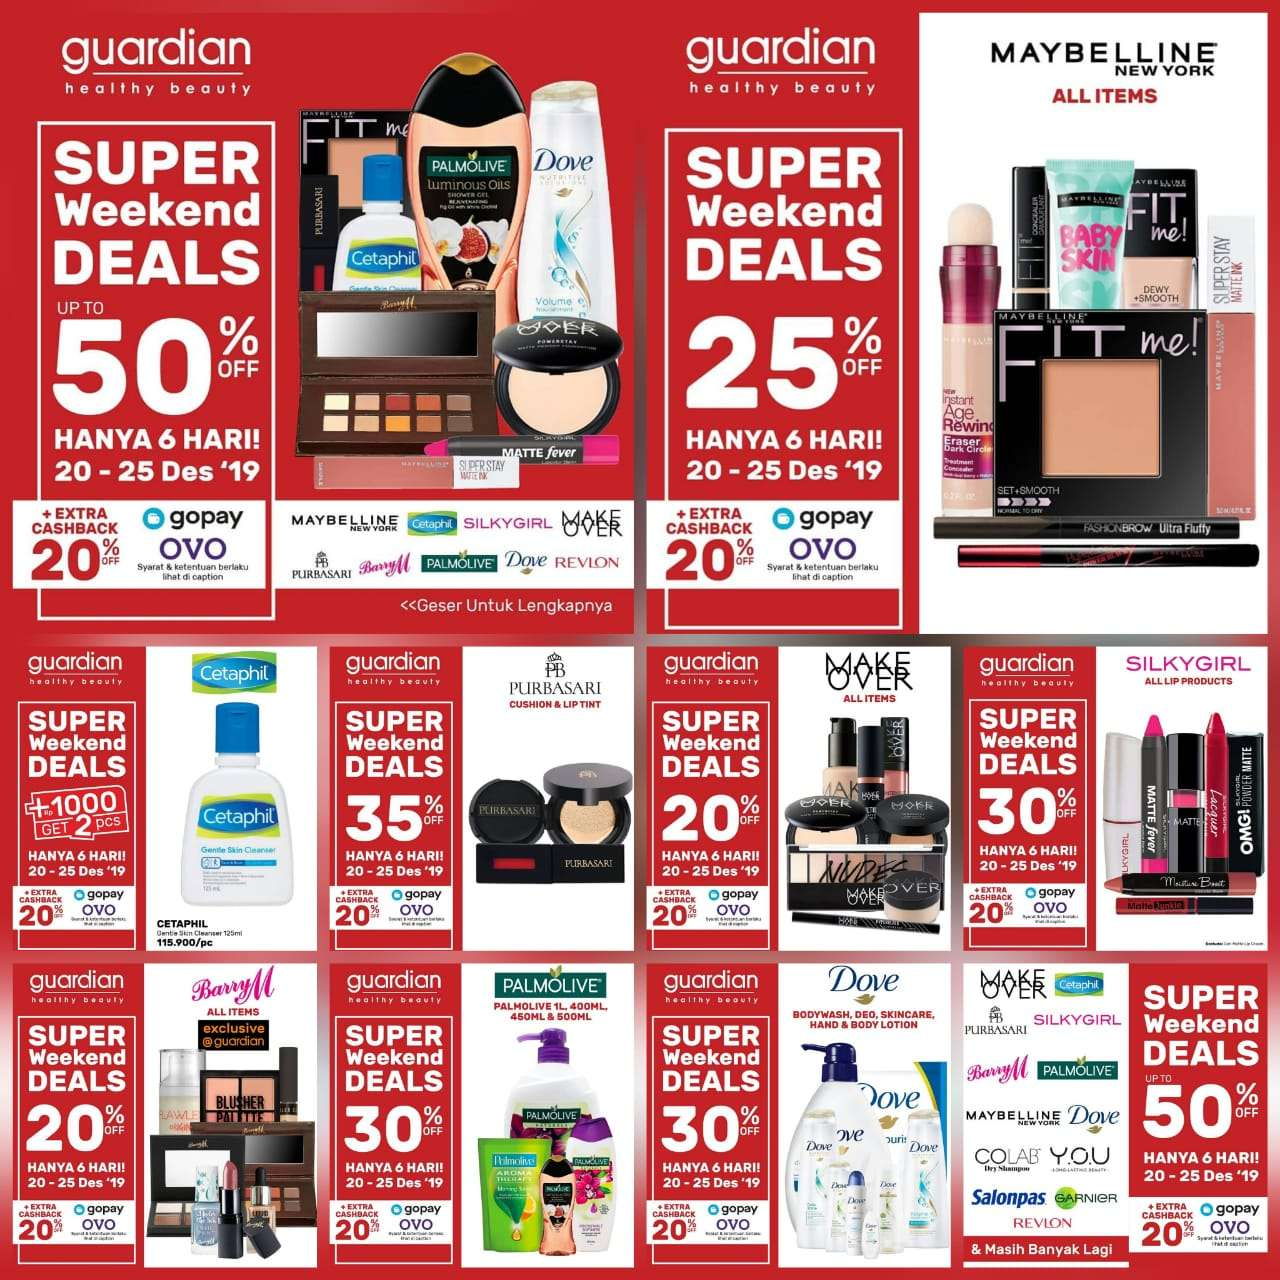 Guardian Promo Super Weekend Deals, Diskon Hingga 50%